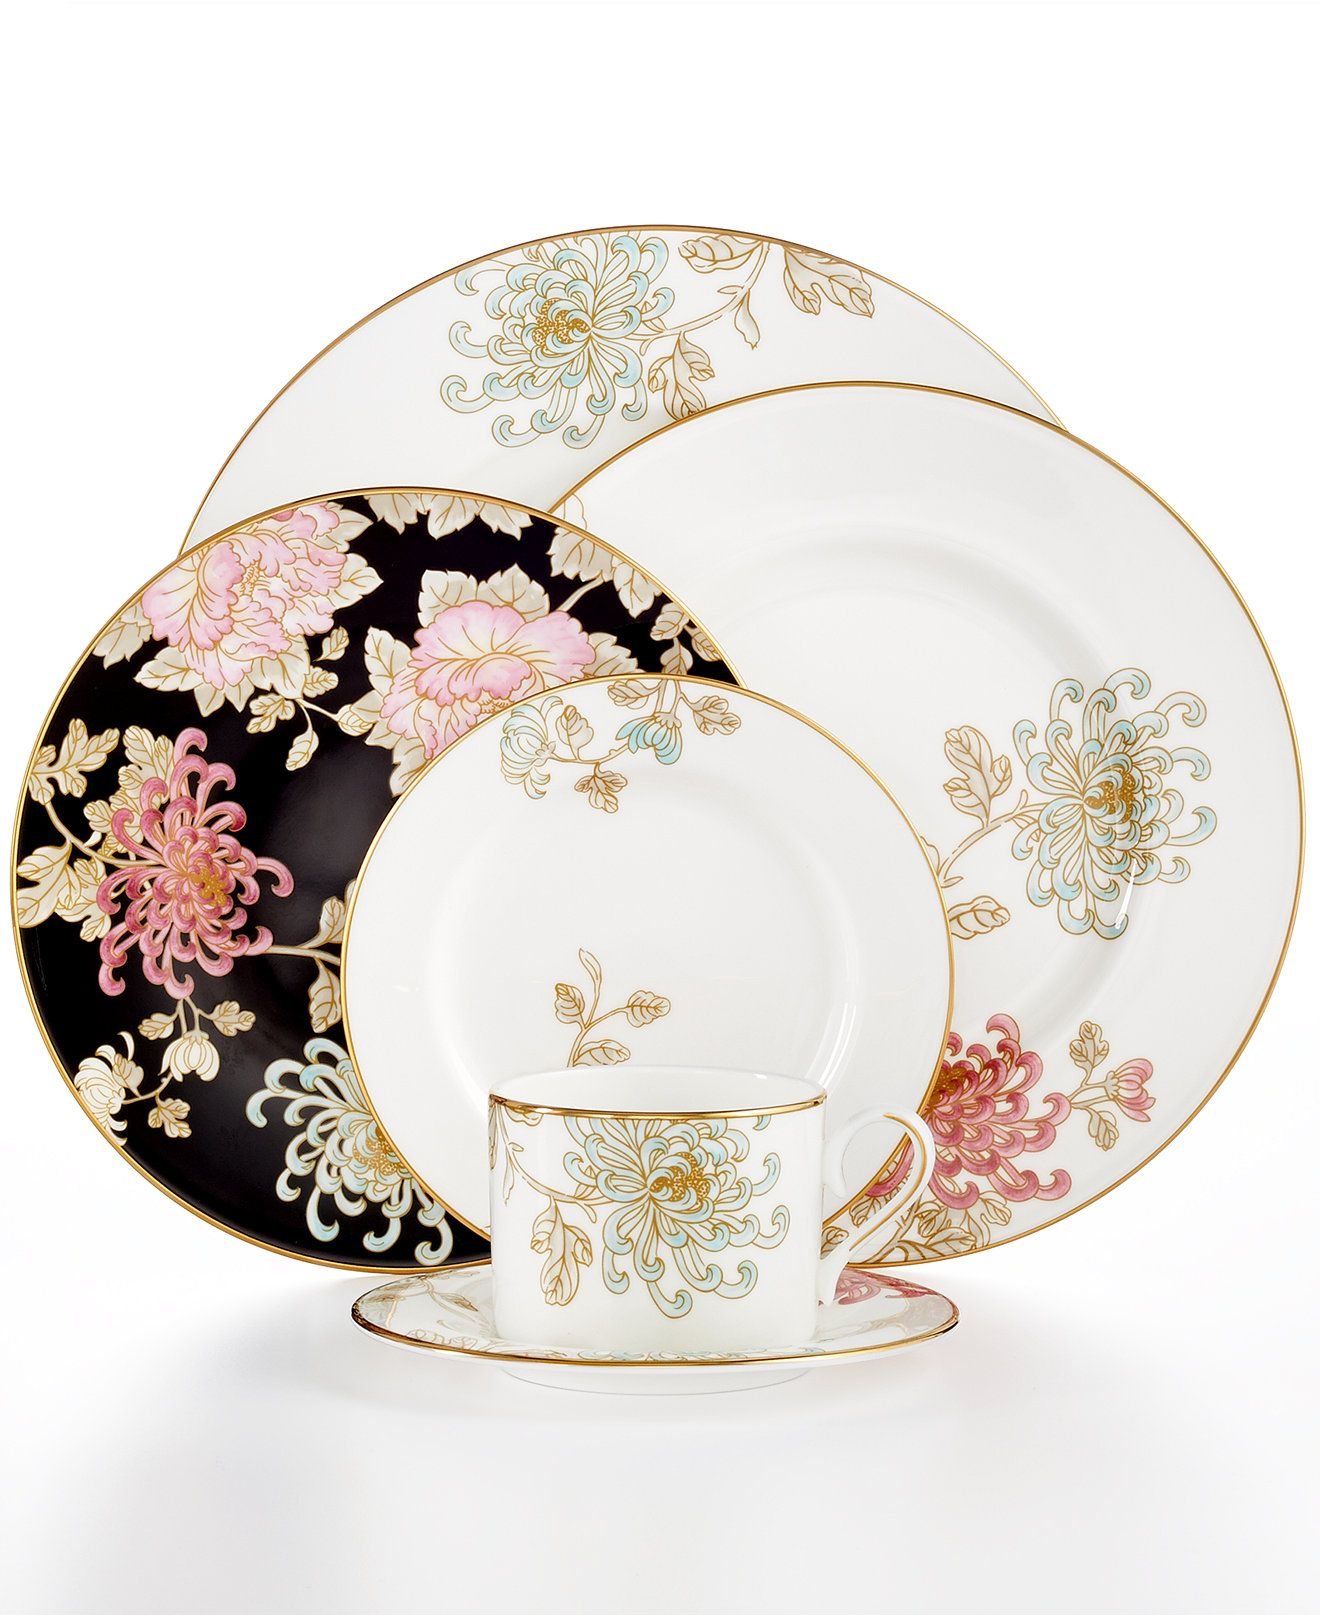 Marchesa By Lenox Dinnerware, Painted Camellia Collection   Marchesa By  Lenox   Dining U0026 Entertaining